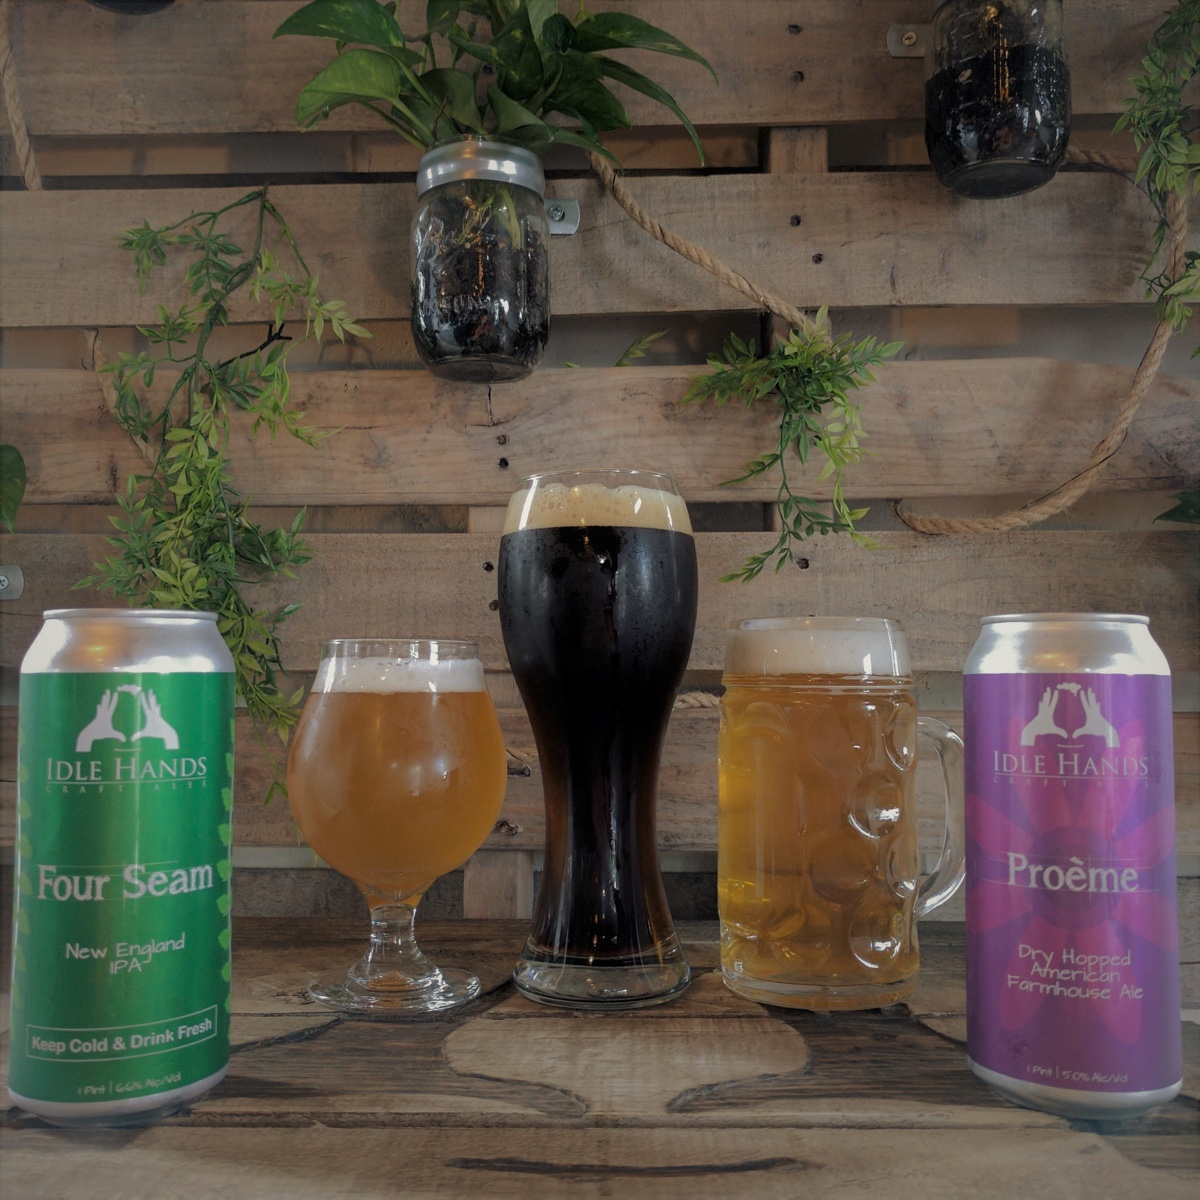 The Maifest beer lineup from Idle Hands Brewery